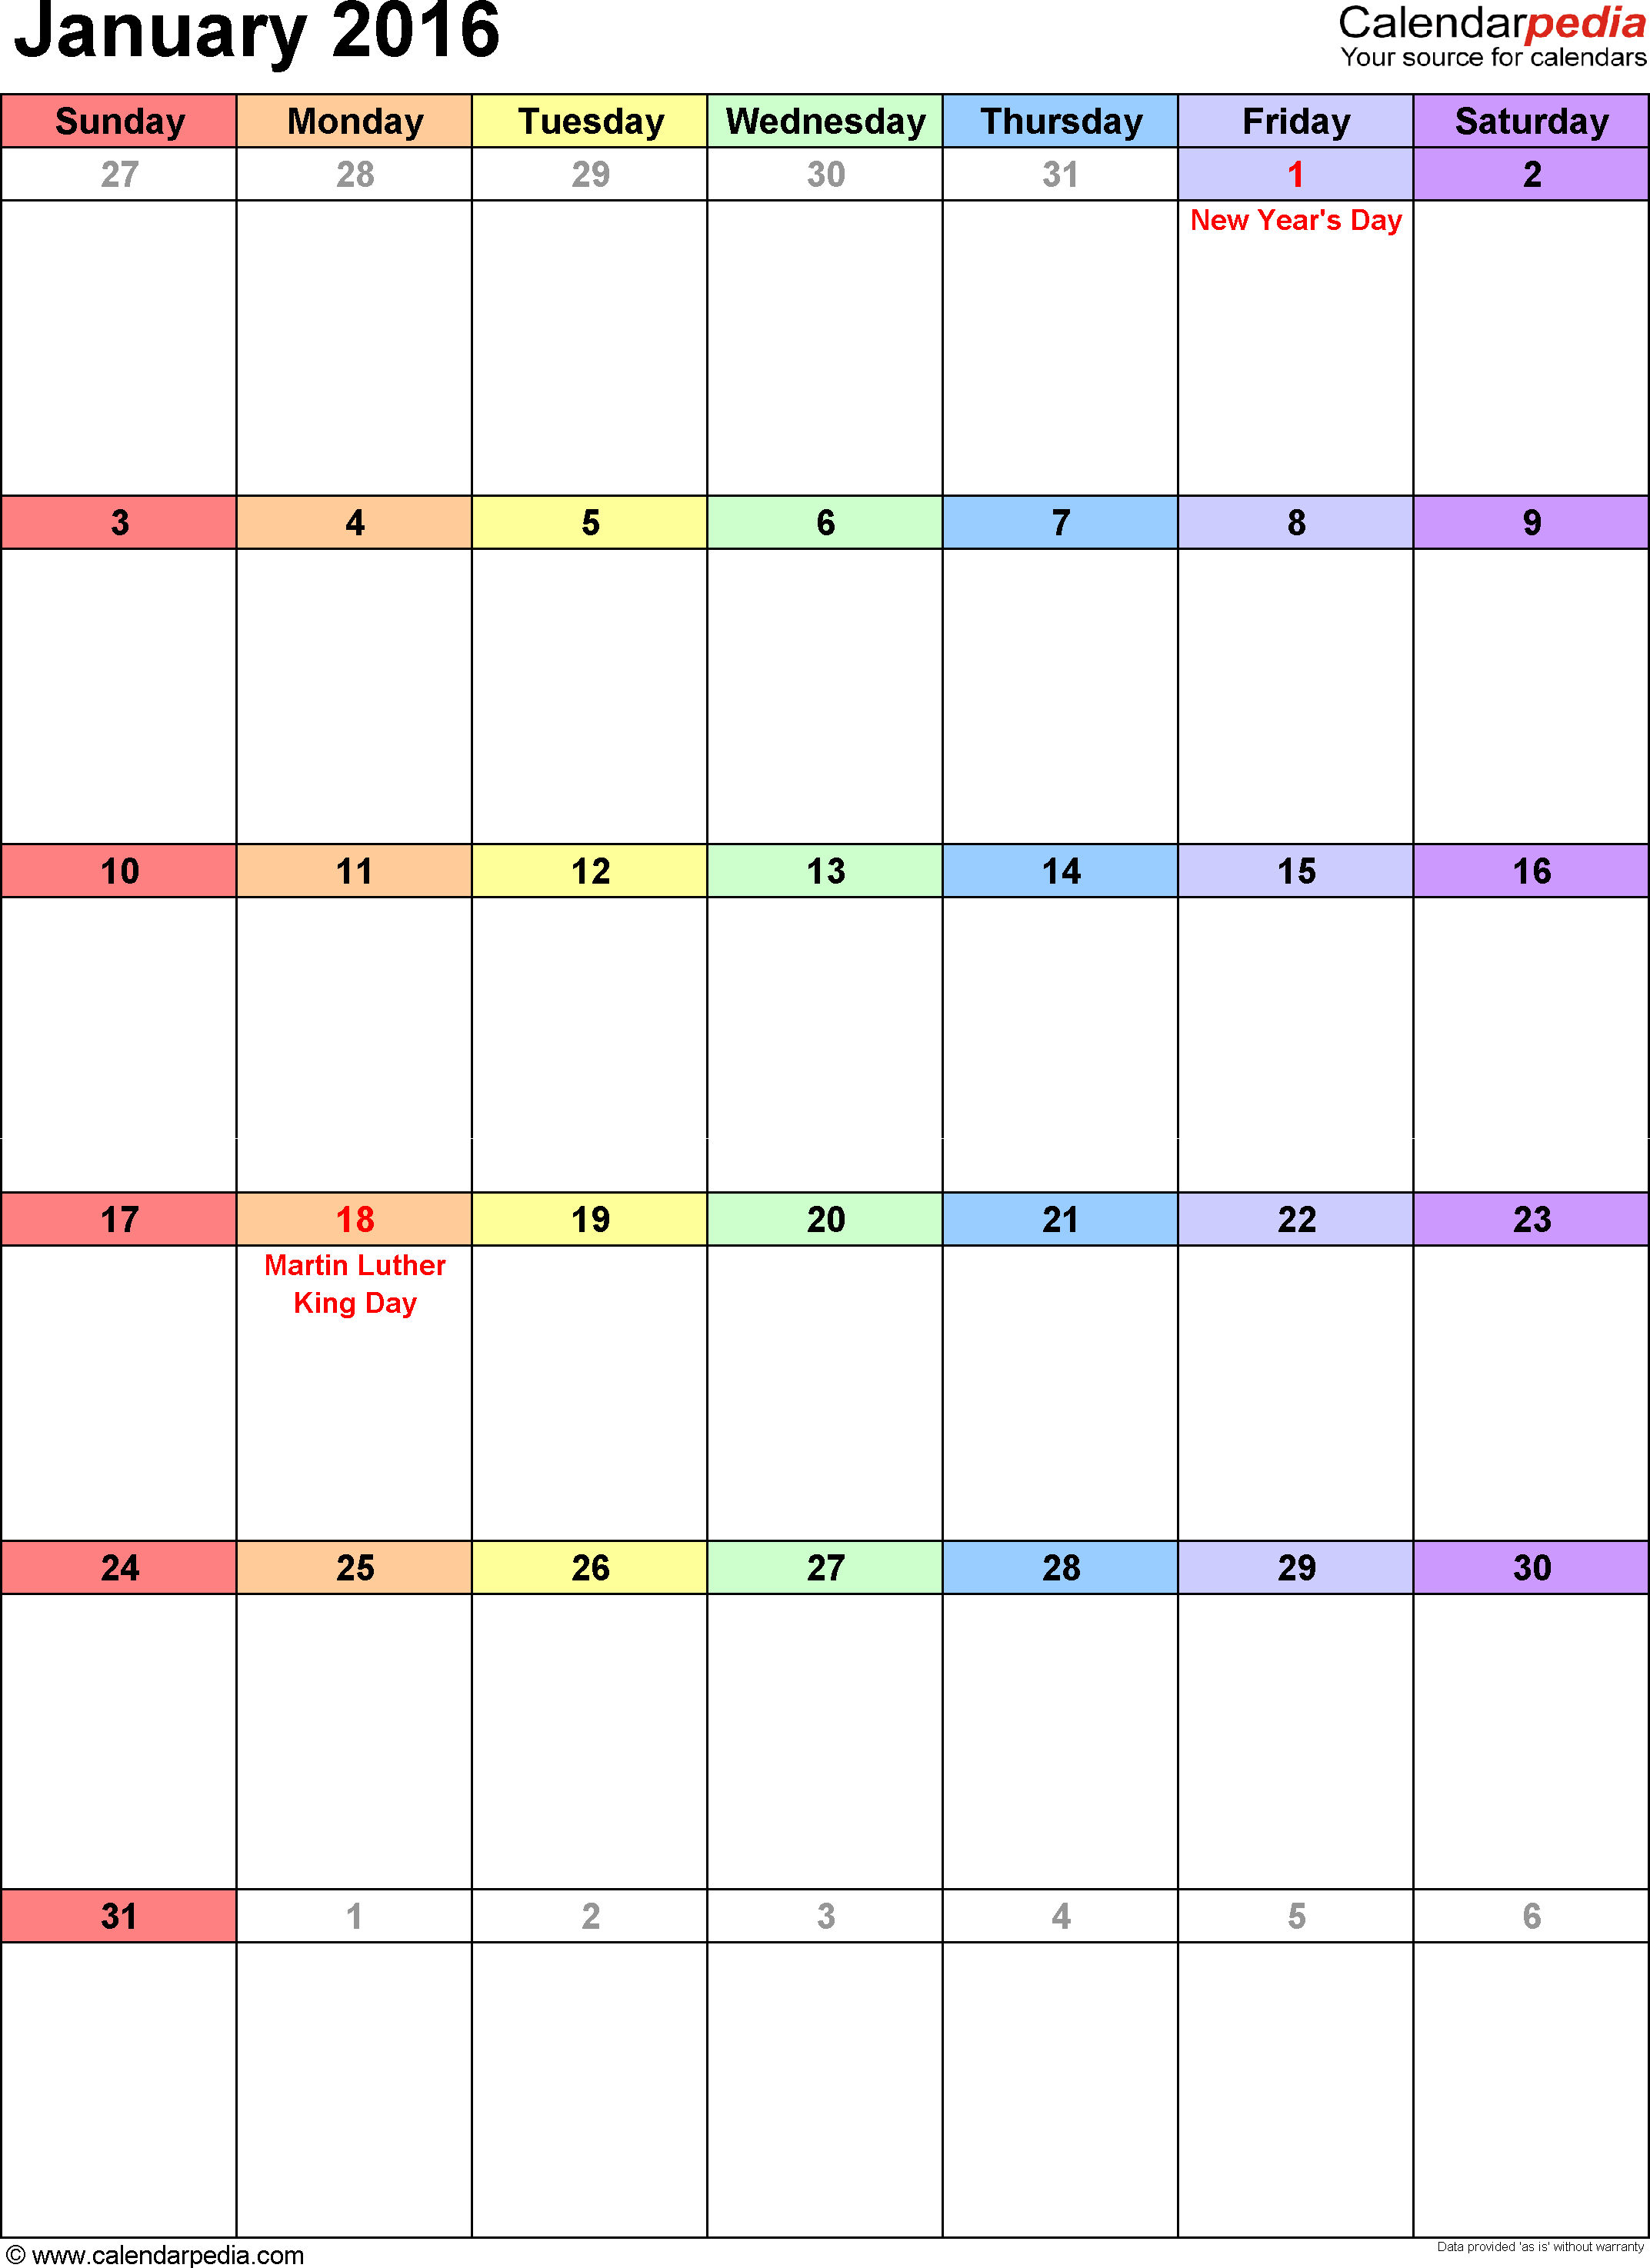 January 2016 calendar as printable Word, Excel & PDF templates